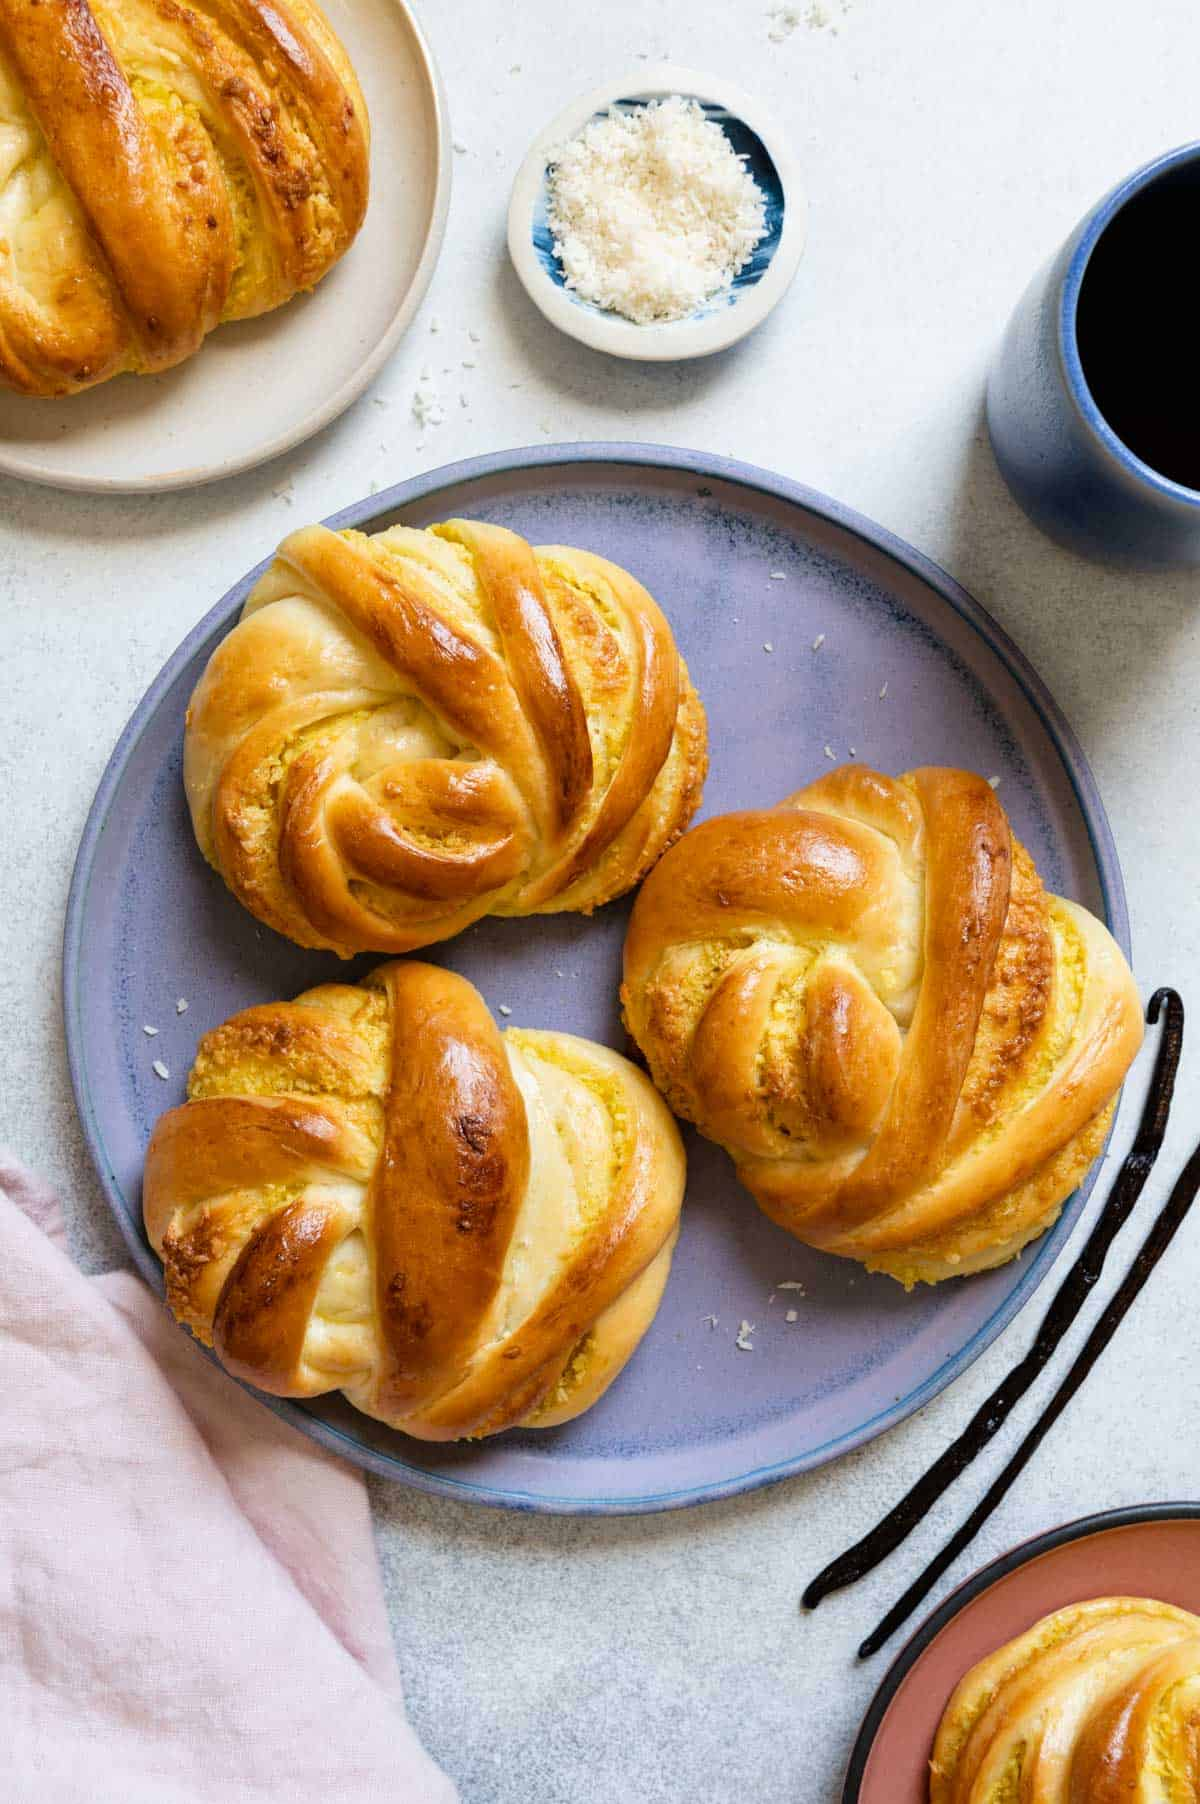 Chinese bakery-inspired coconut buns